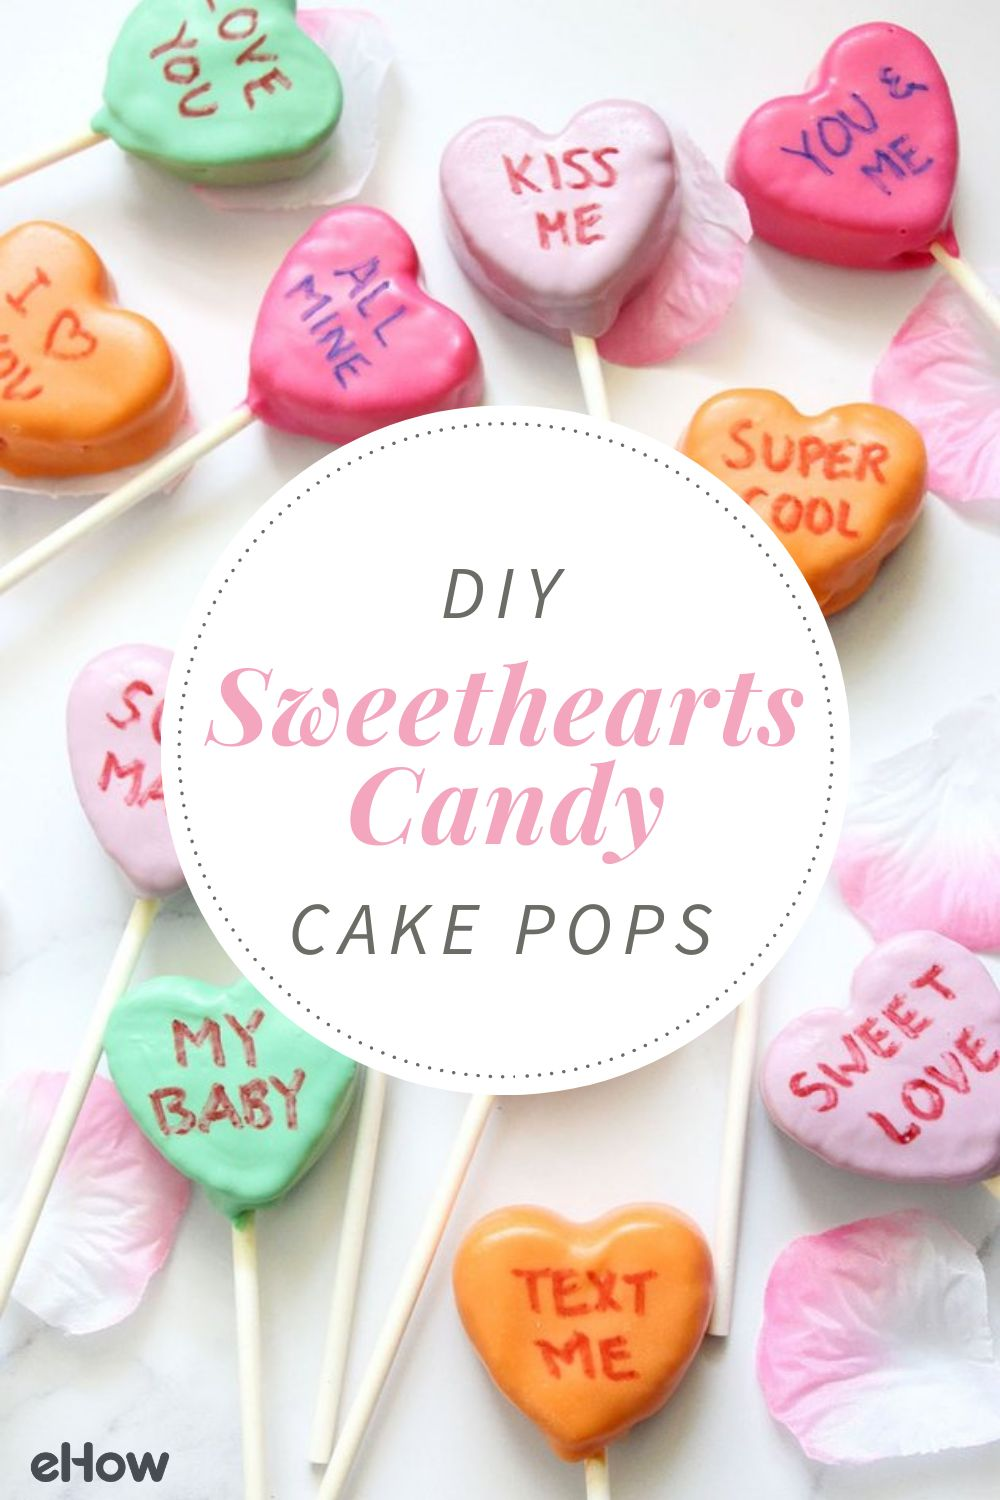 DIY Sweethearts Candy Cake Pops